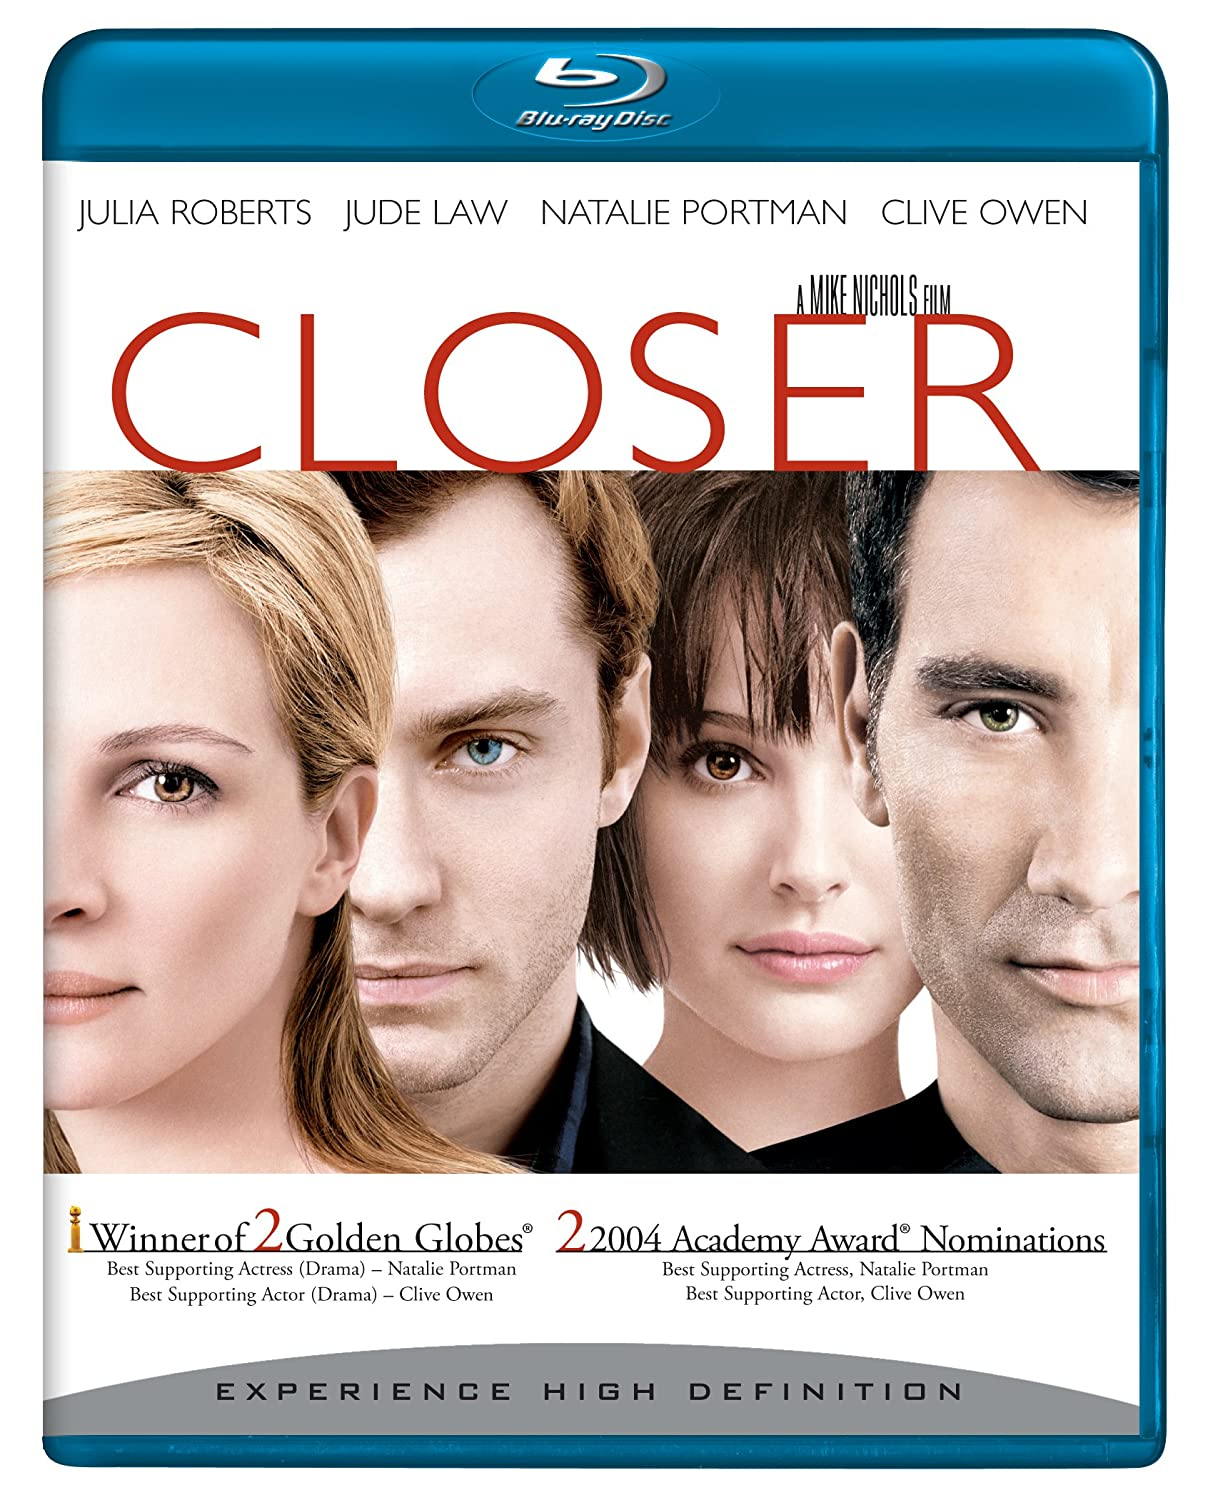 Amazon.com: Closer [Blu-ray]: Natalie Portman, Jude Law, Clive Owen, Julia  Roberts, Nick Hobbs, Colin Stinton, Steve Benham, Elizabeth Bower, Ray  Donn, Daniel Dresner, Rrenford Junior Fagan, Antony Gabriel, Mike Nichols,  Cary Brokaw,